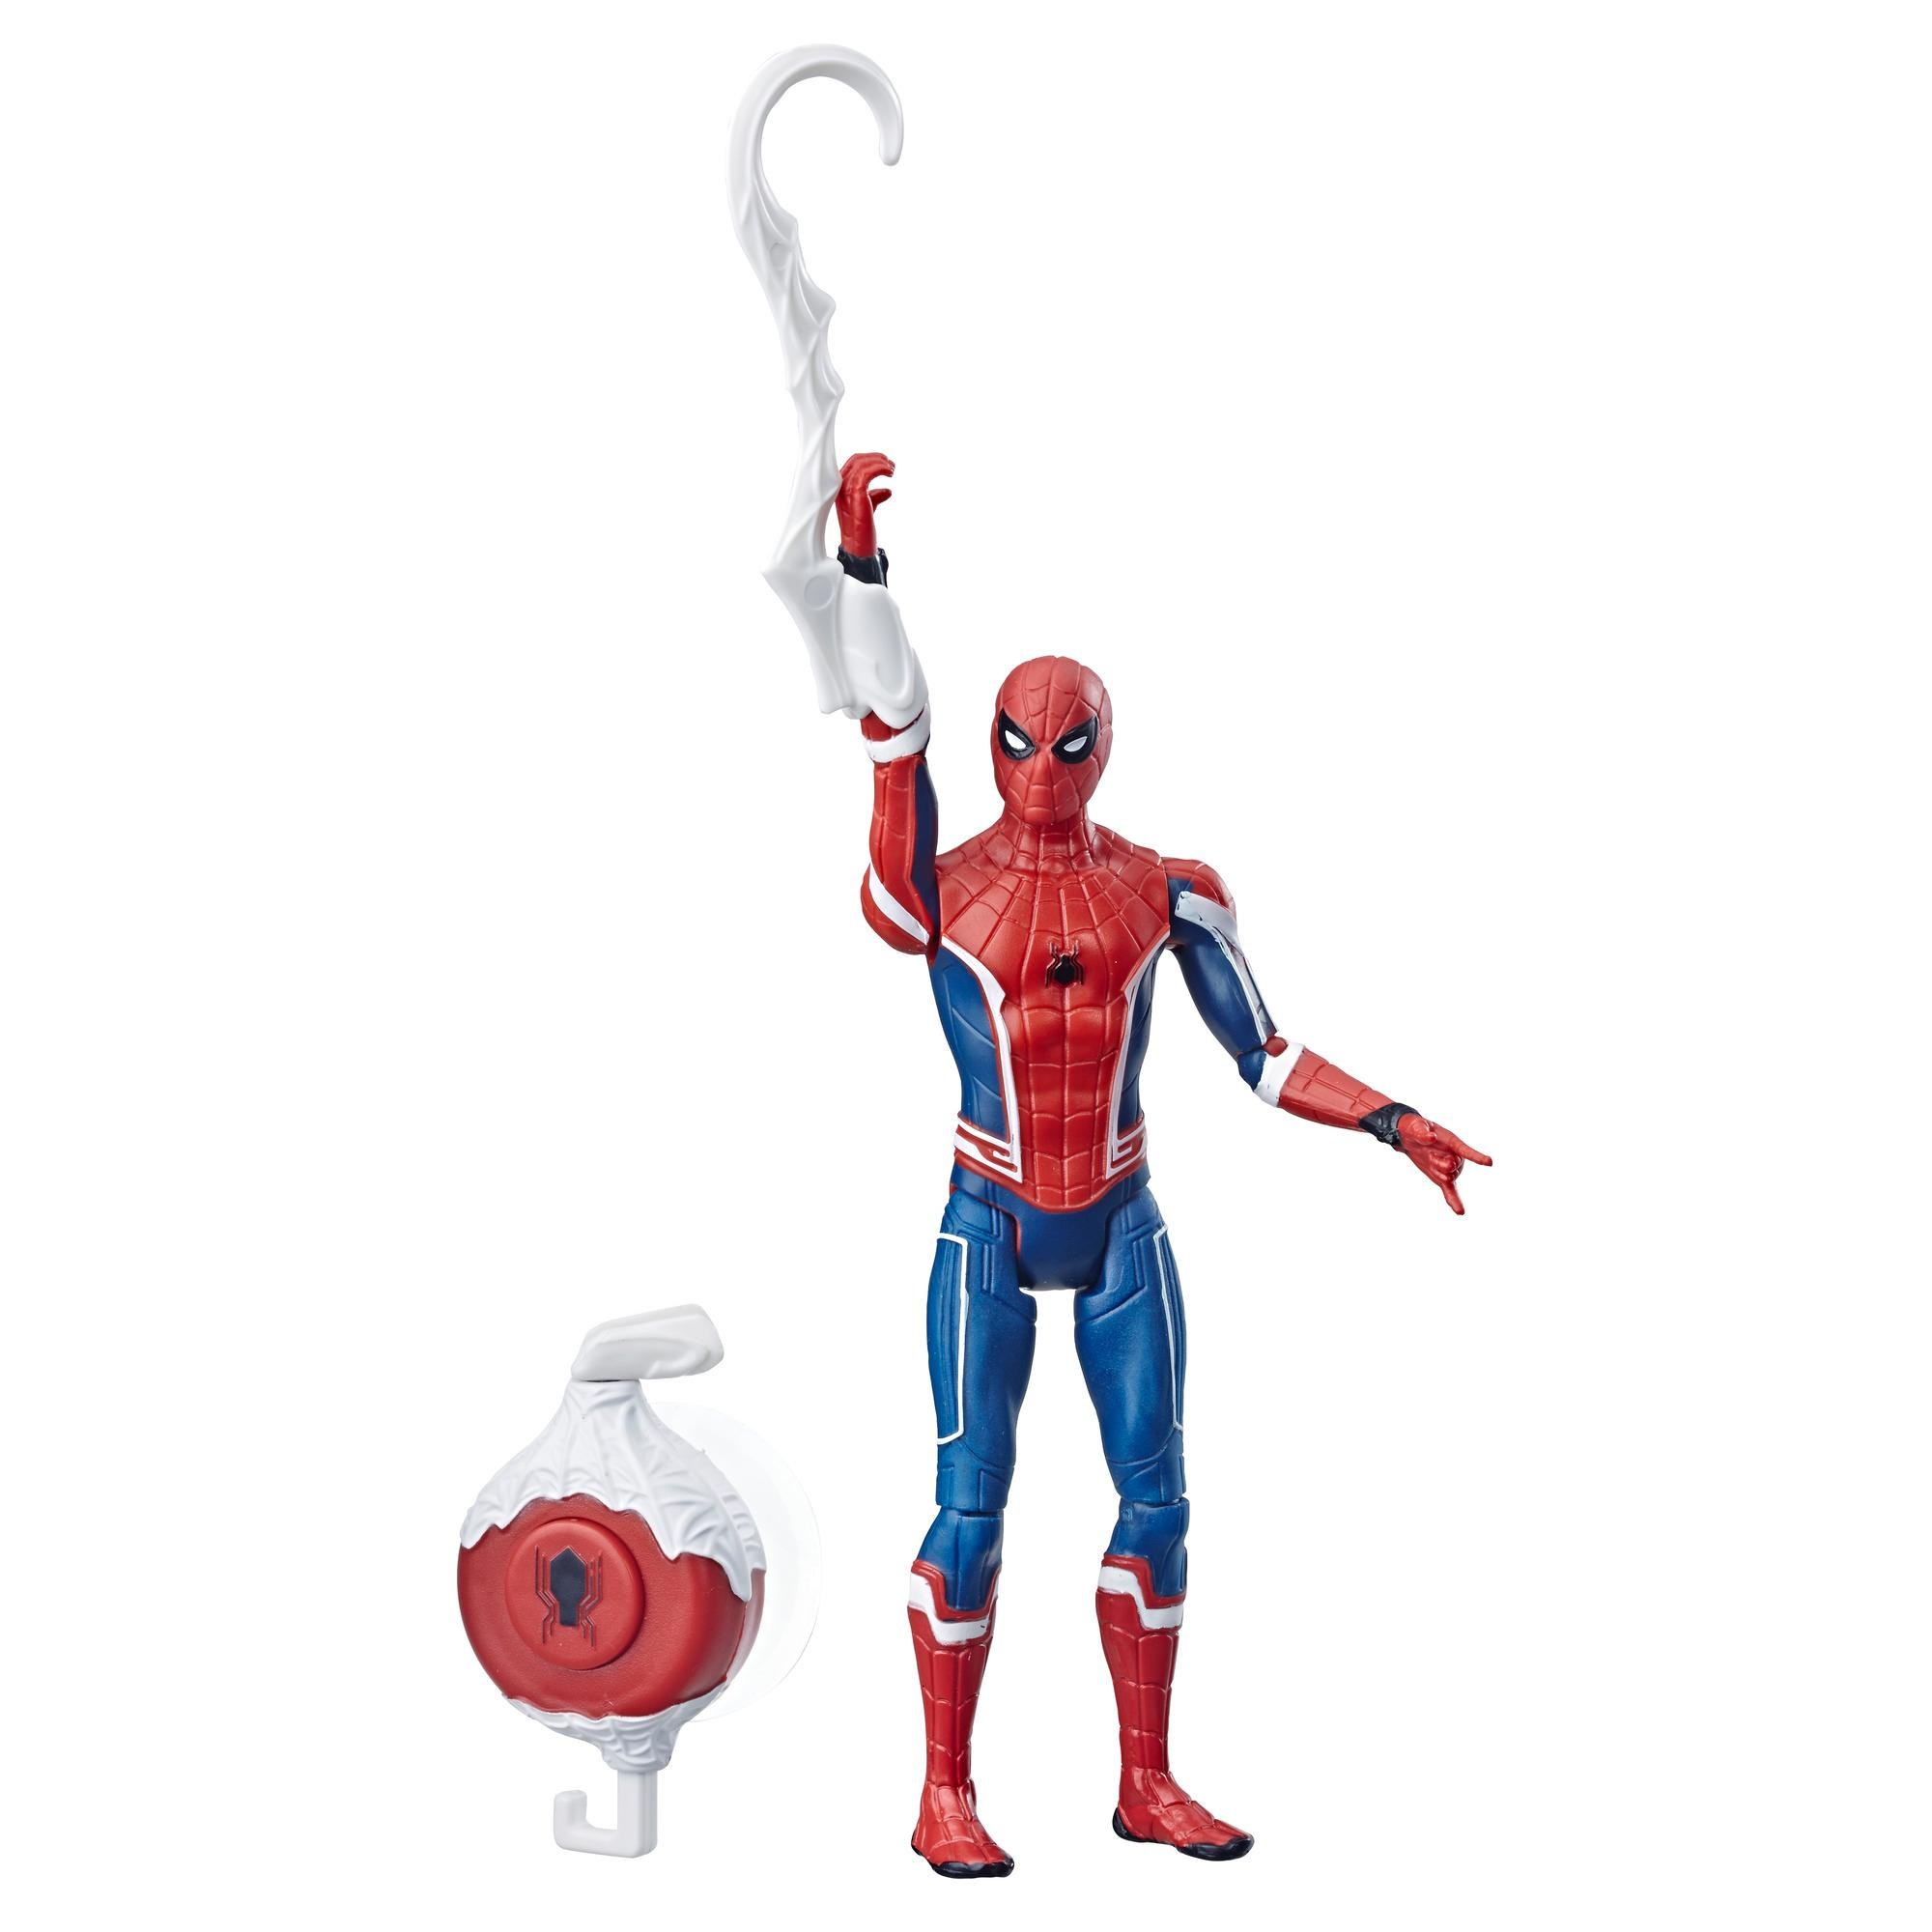 Spider-Man: Far From Home Ultimate Crawler Spider-Man Concept Series 6-Inch Action Figure